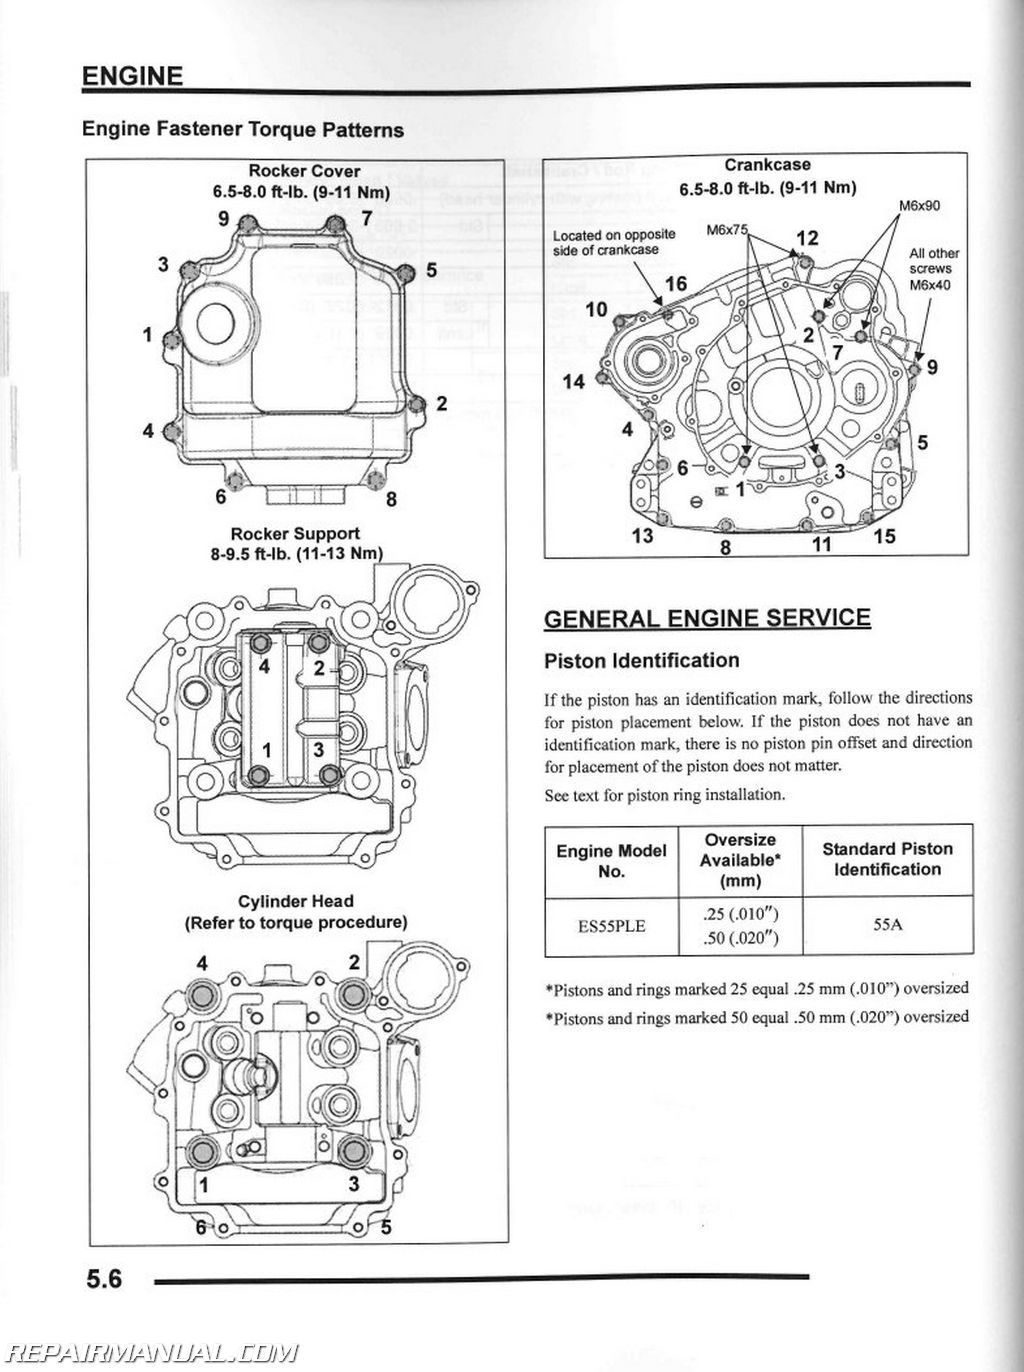 2009 Polaris Sportsman 550 Xp Wiring Diagram